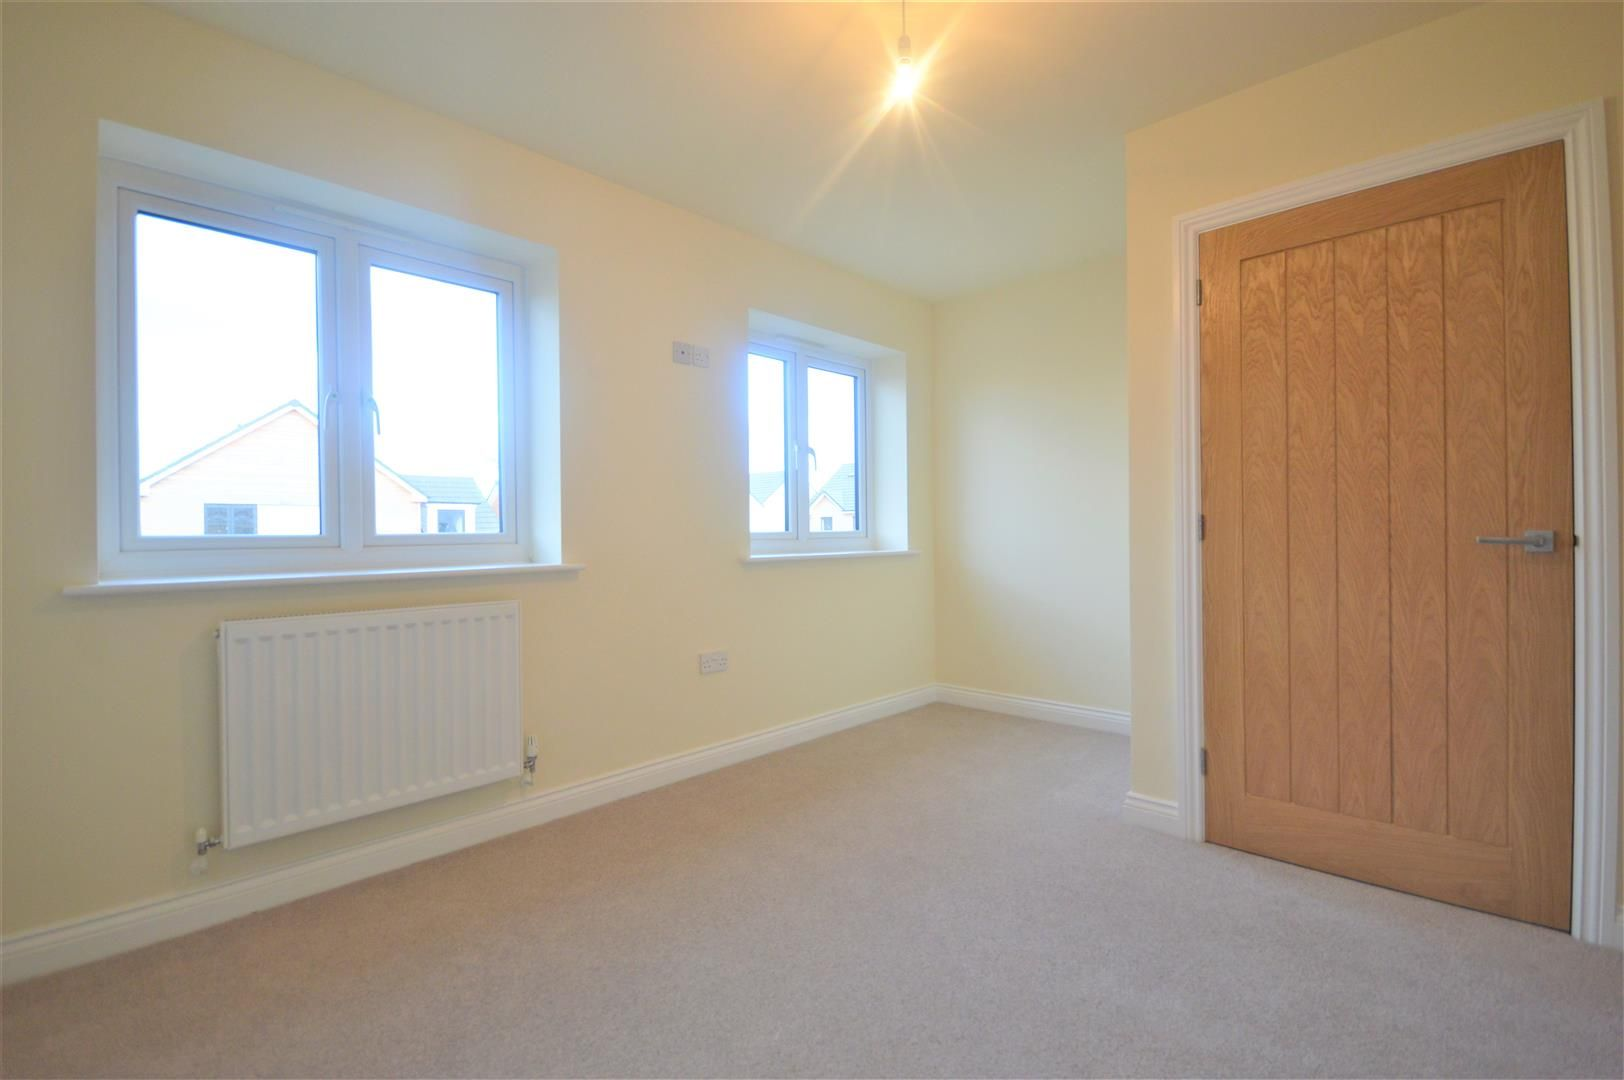 2 bed terraced for sale in Kingsland 7